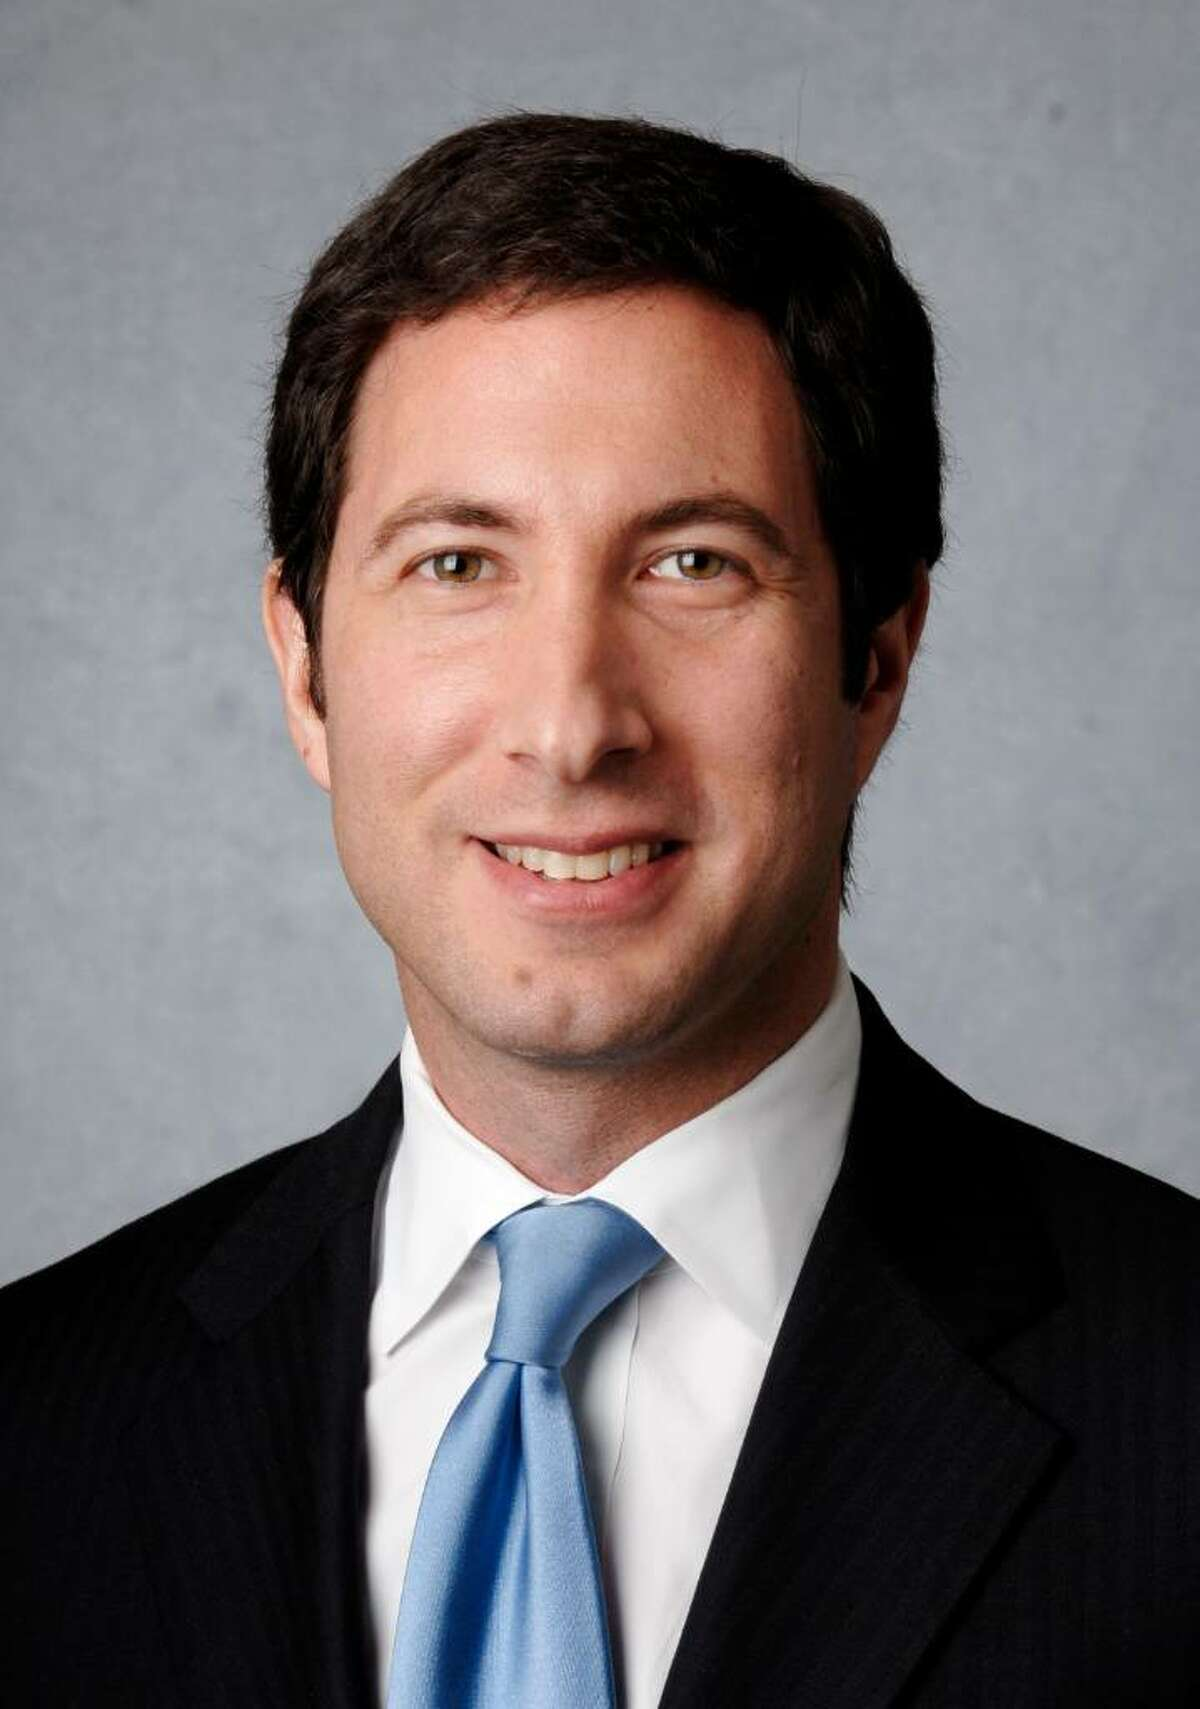 State Rep. Jim Shapiro, D-Stamford, chairman of the legislature's General Law Committee with a 13-year career in state and local government said he will not seek a fourth term representing the 144th legislative district